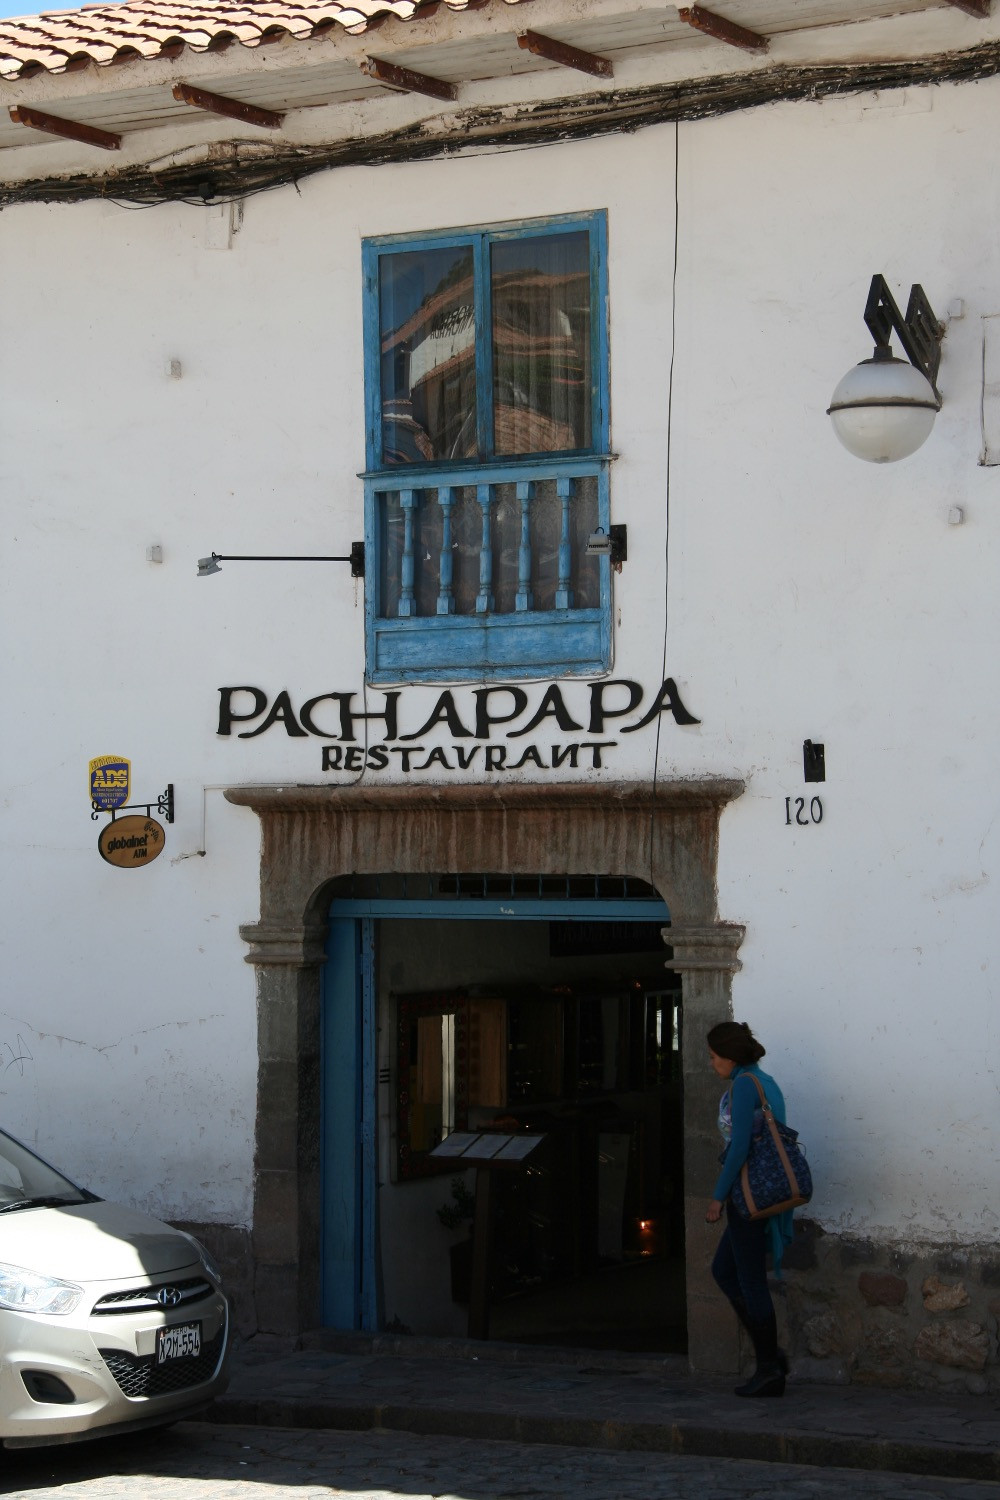 I ate at Pachapapa (meaning father earth) each night. The local Peruvian menu is simply awesome.